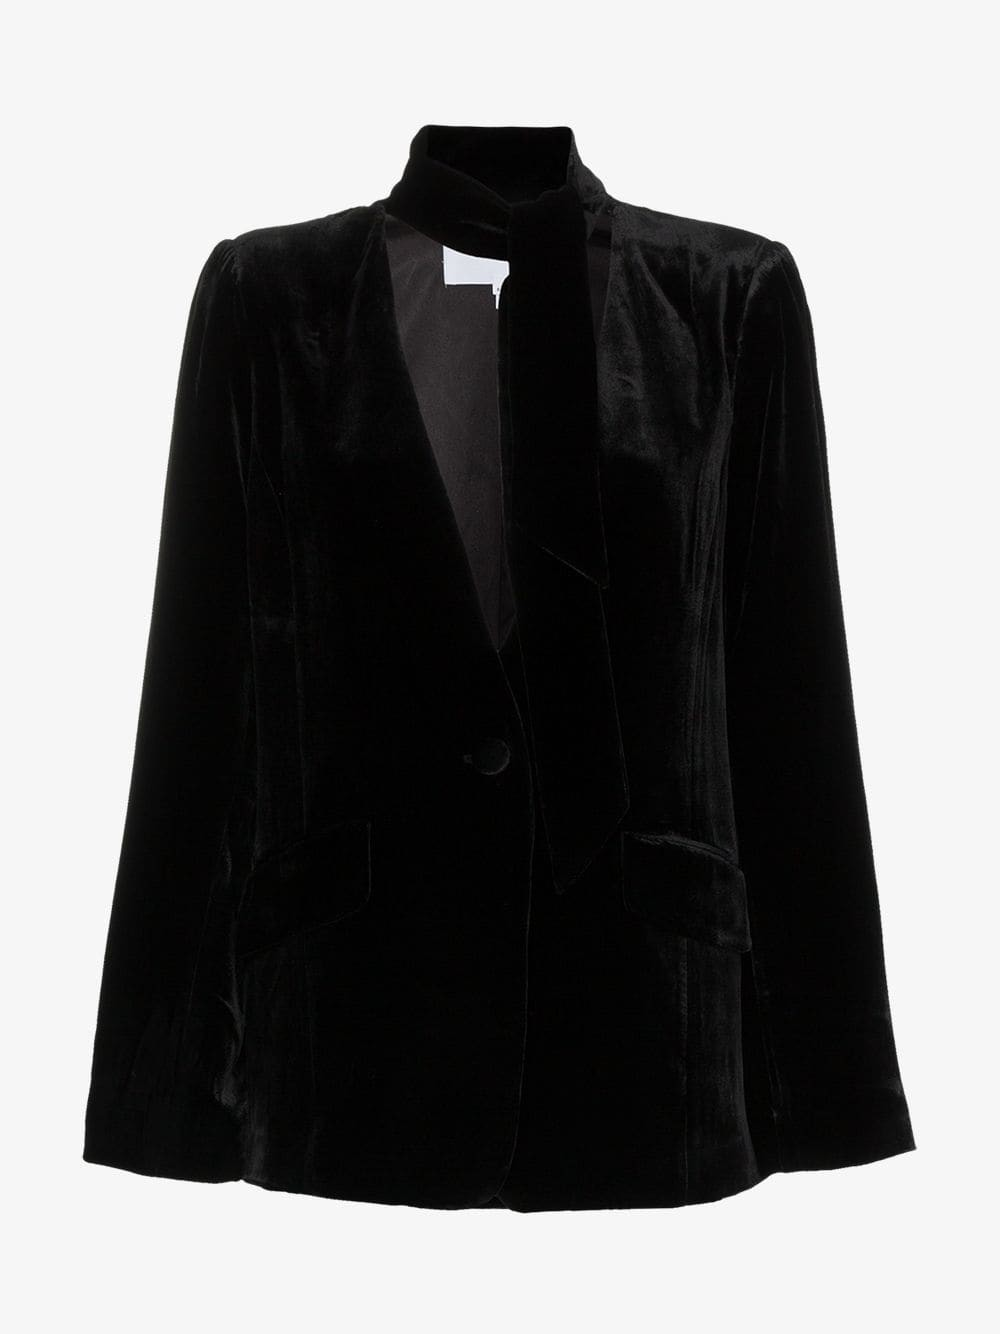 Frame Denim FRAME tie neck collarless silk blend velvet blazer in black